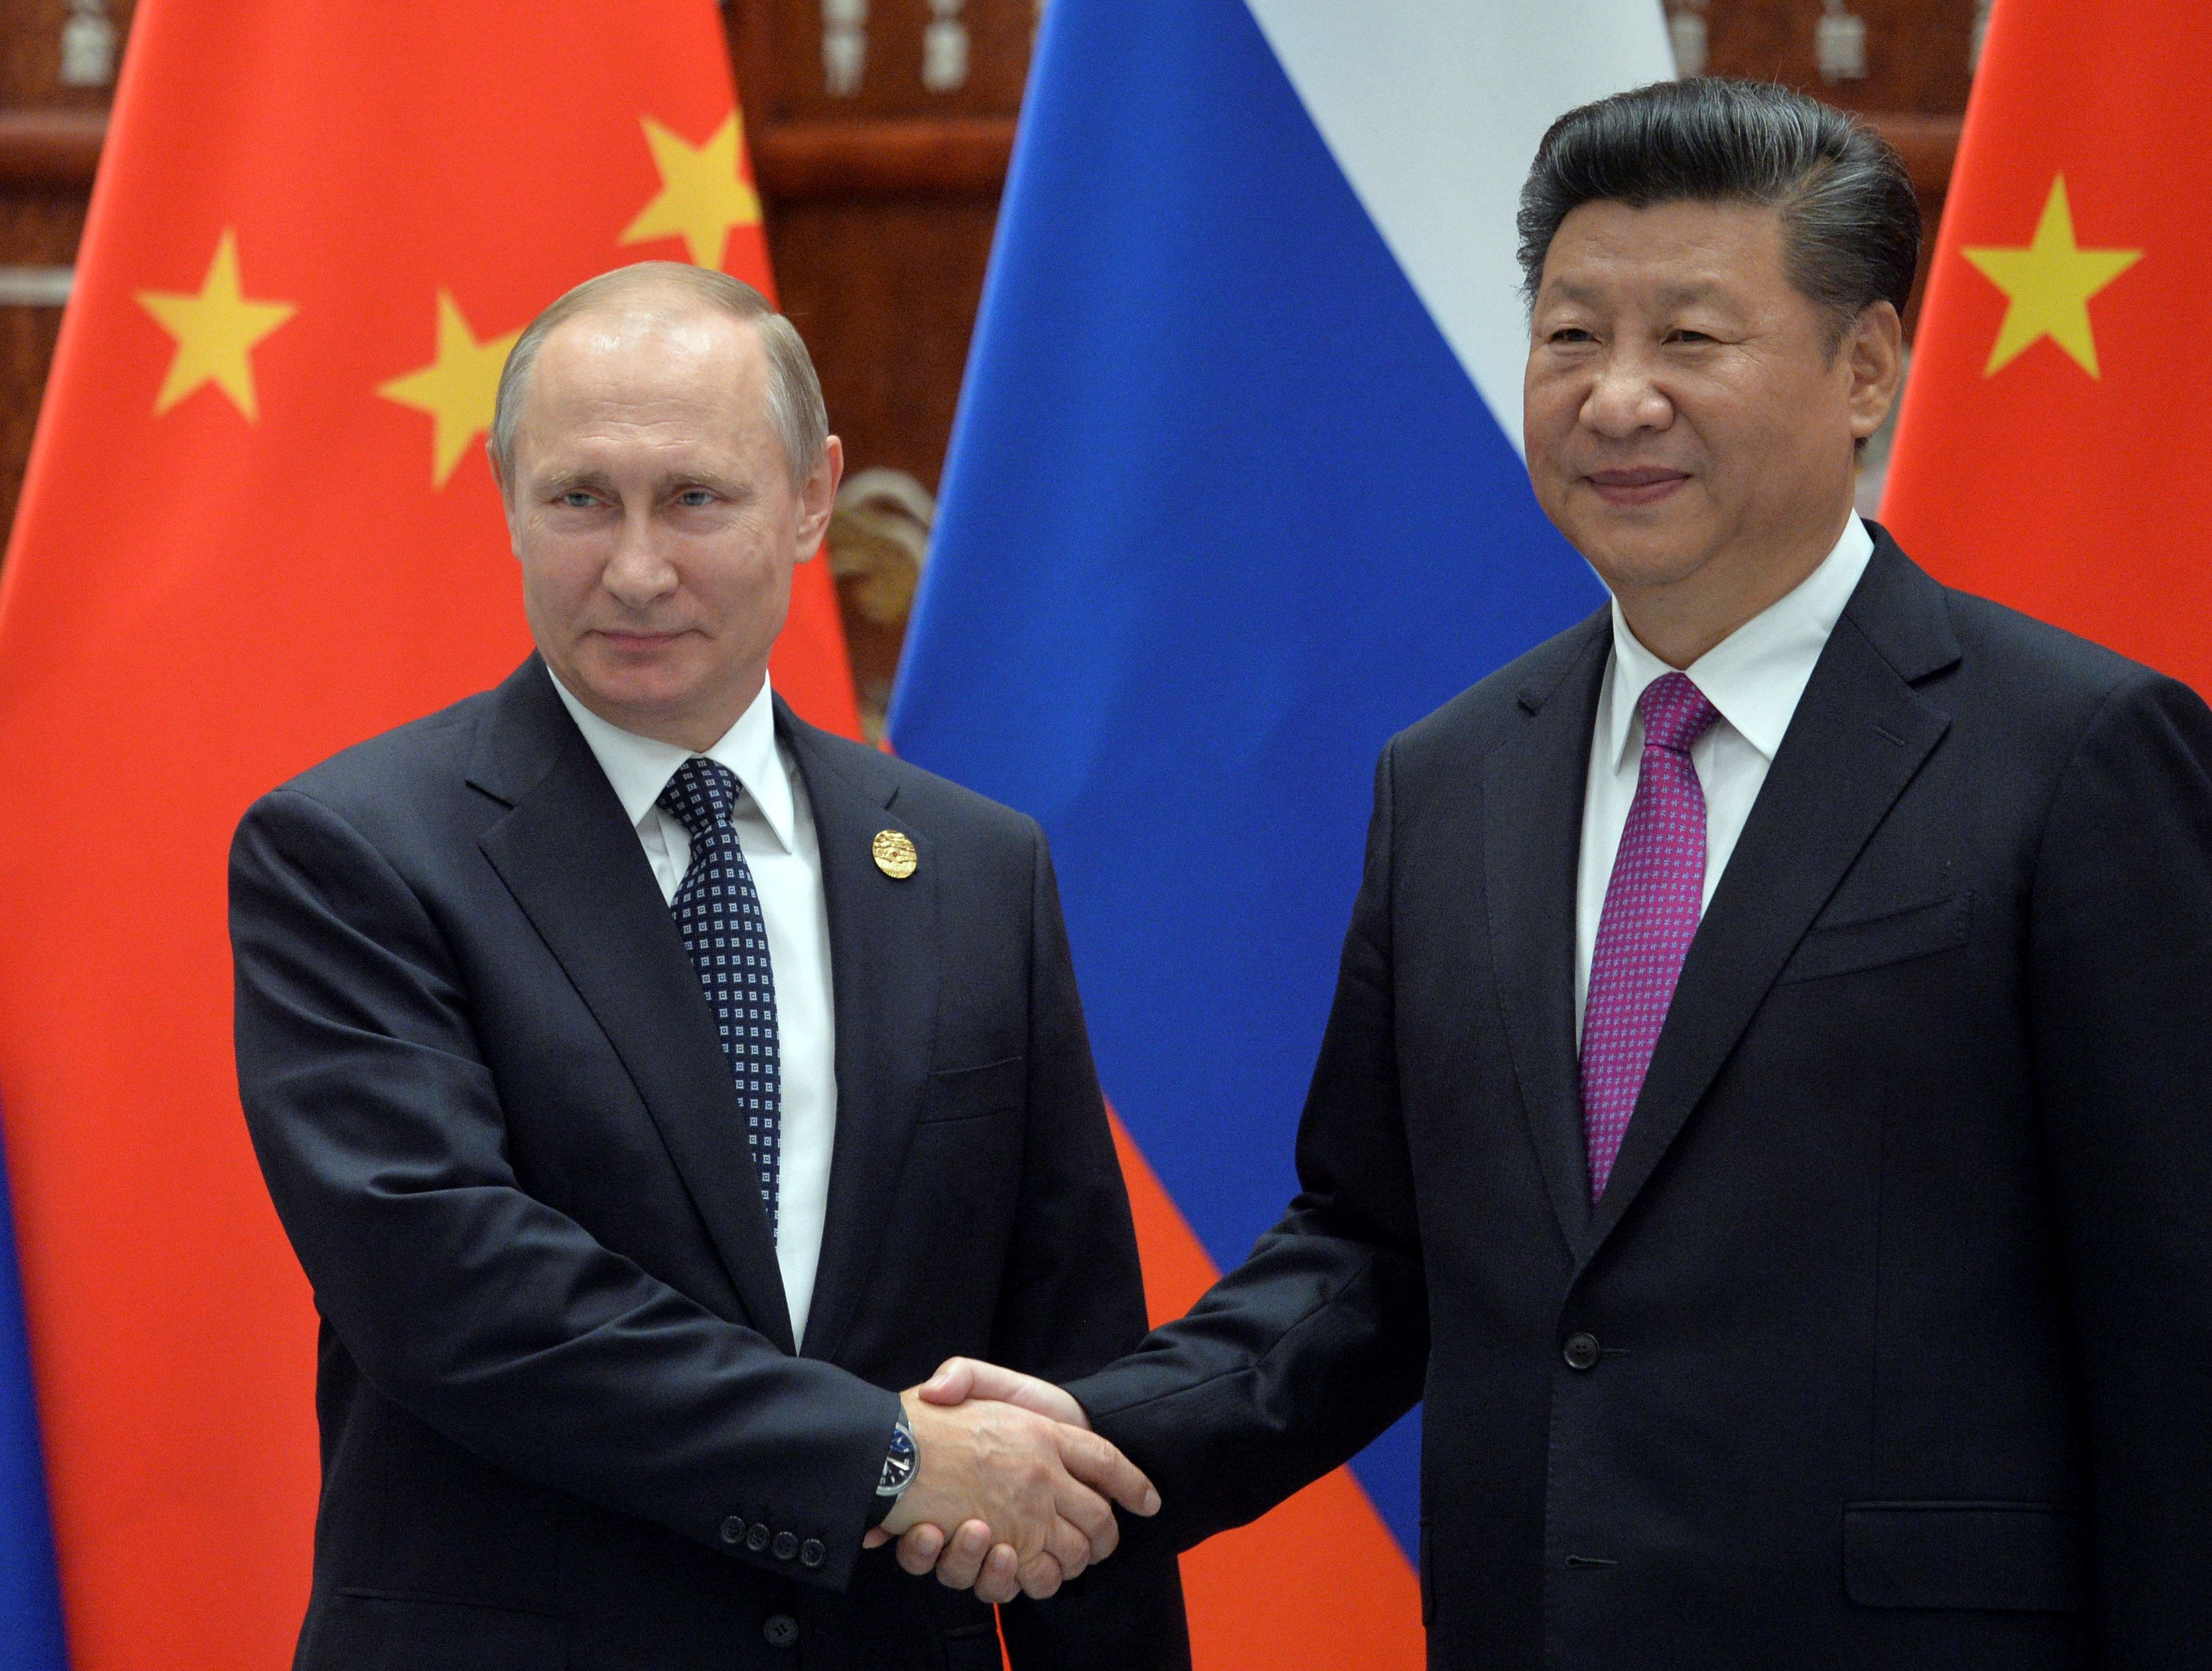 Russian President Vladimir Putin meets with his Chinese counterpart Xi Jinping at the G20 Summit. Hangzhou, China. Sept. 4, 2